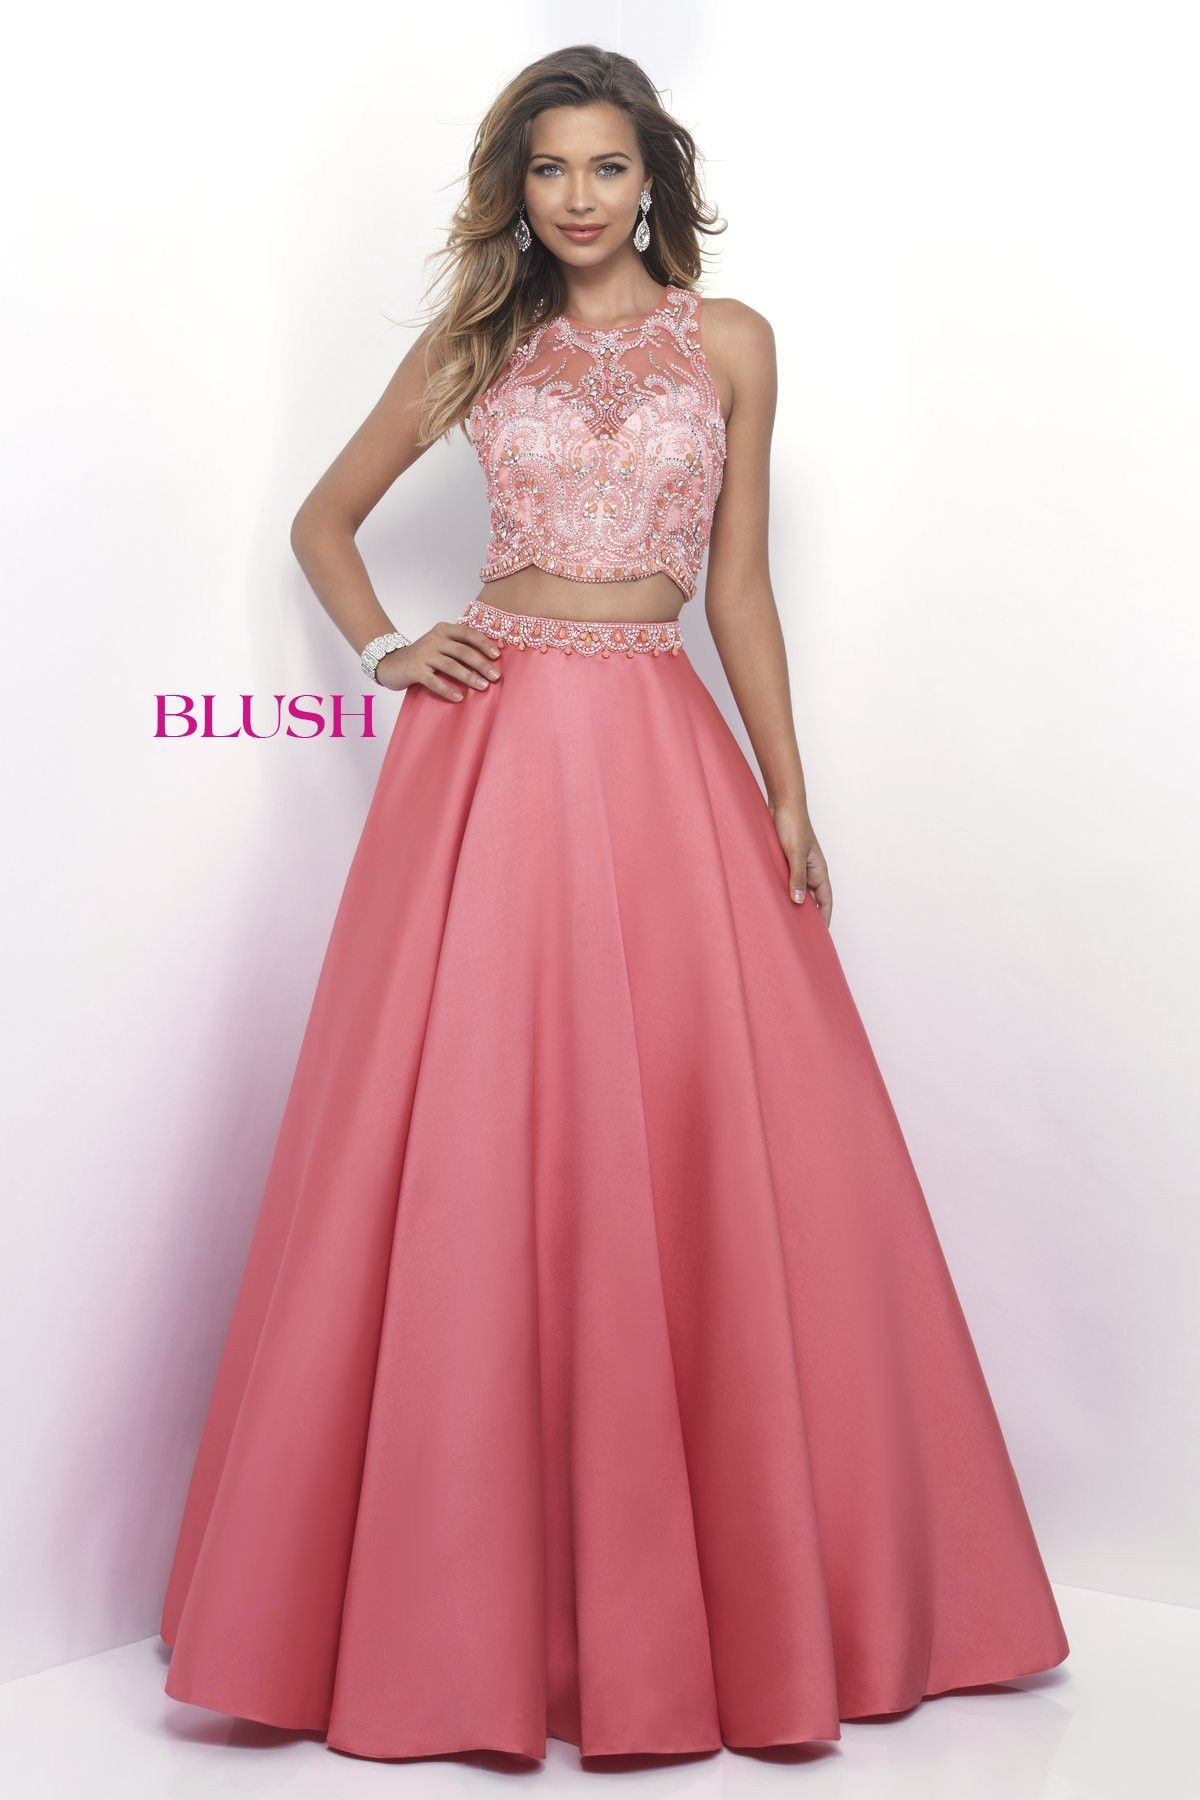 Pink by Blush 5619 Bittersweet Beaded Two-Piece Prom Dress | MODA ...